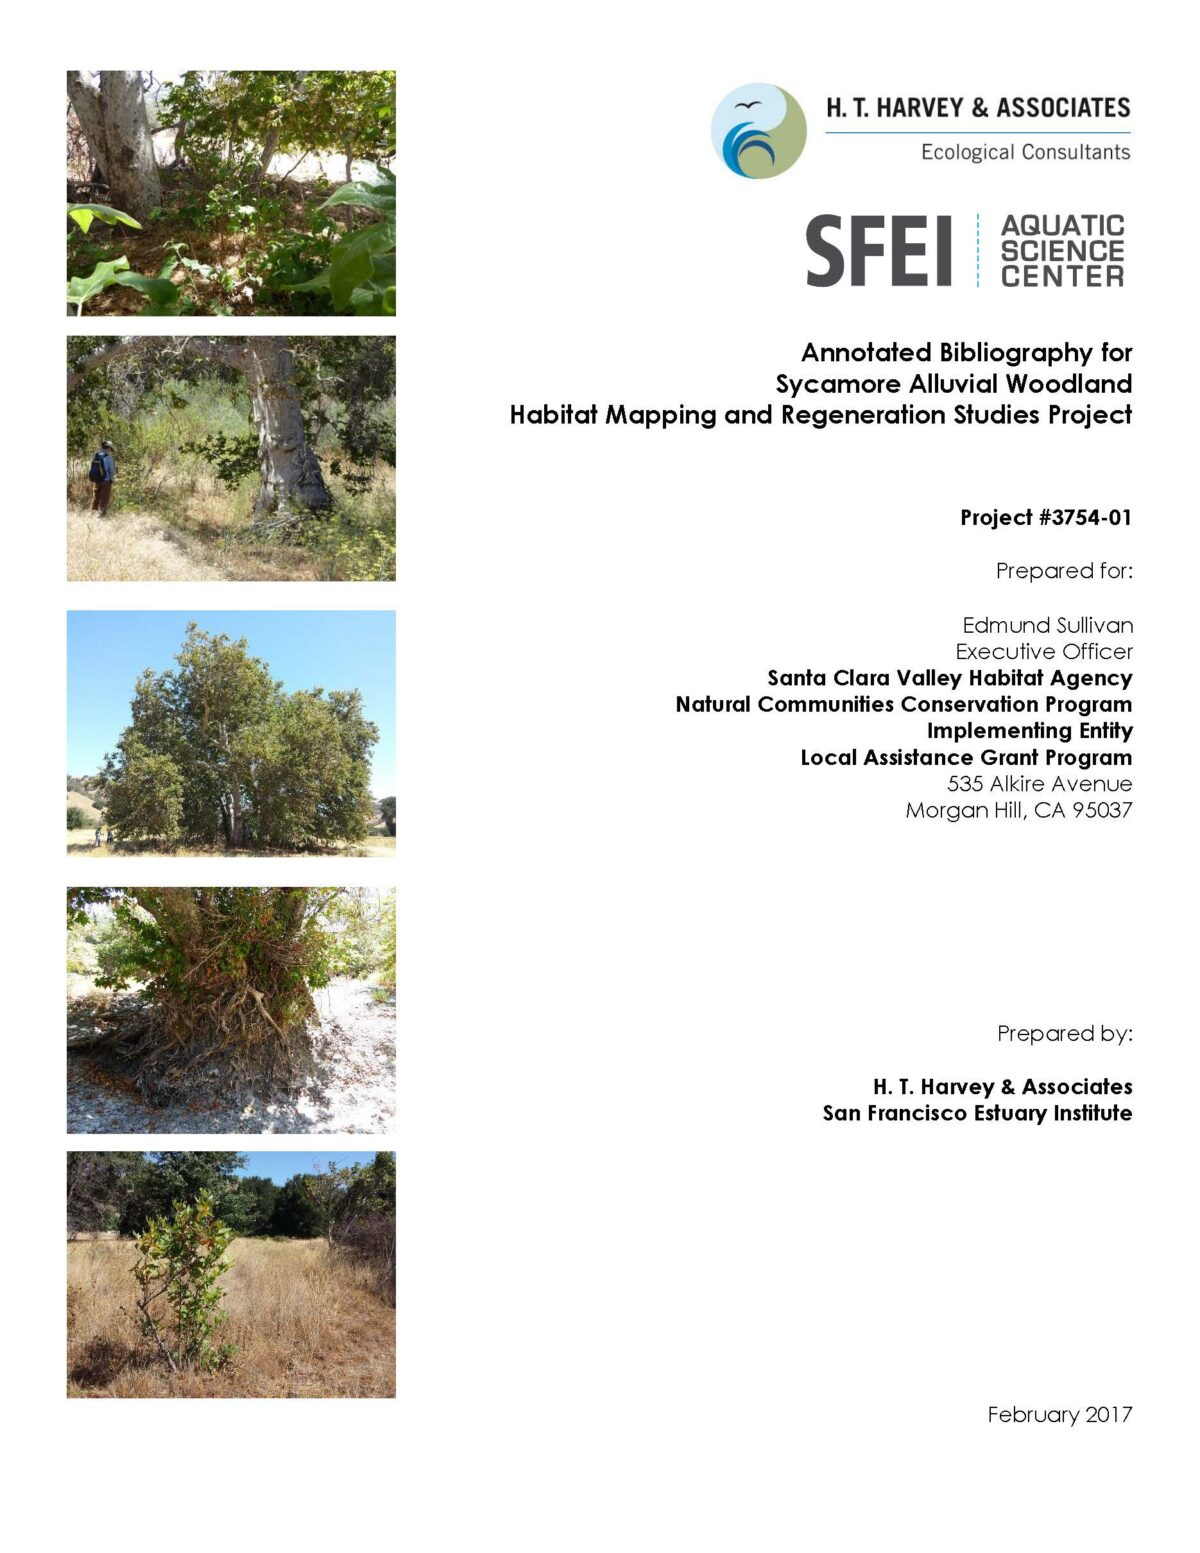 Annotated Bibliography for Sycamore Alluvial Woodland Habitat Mapping and Regeneration Studies Project